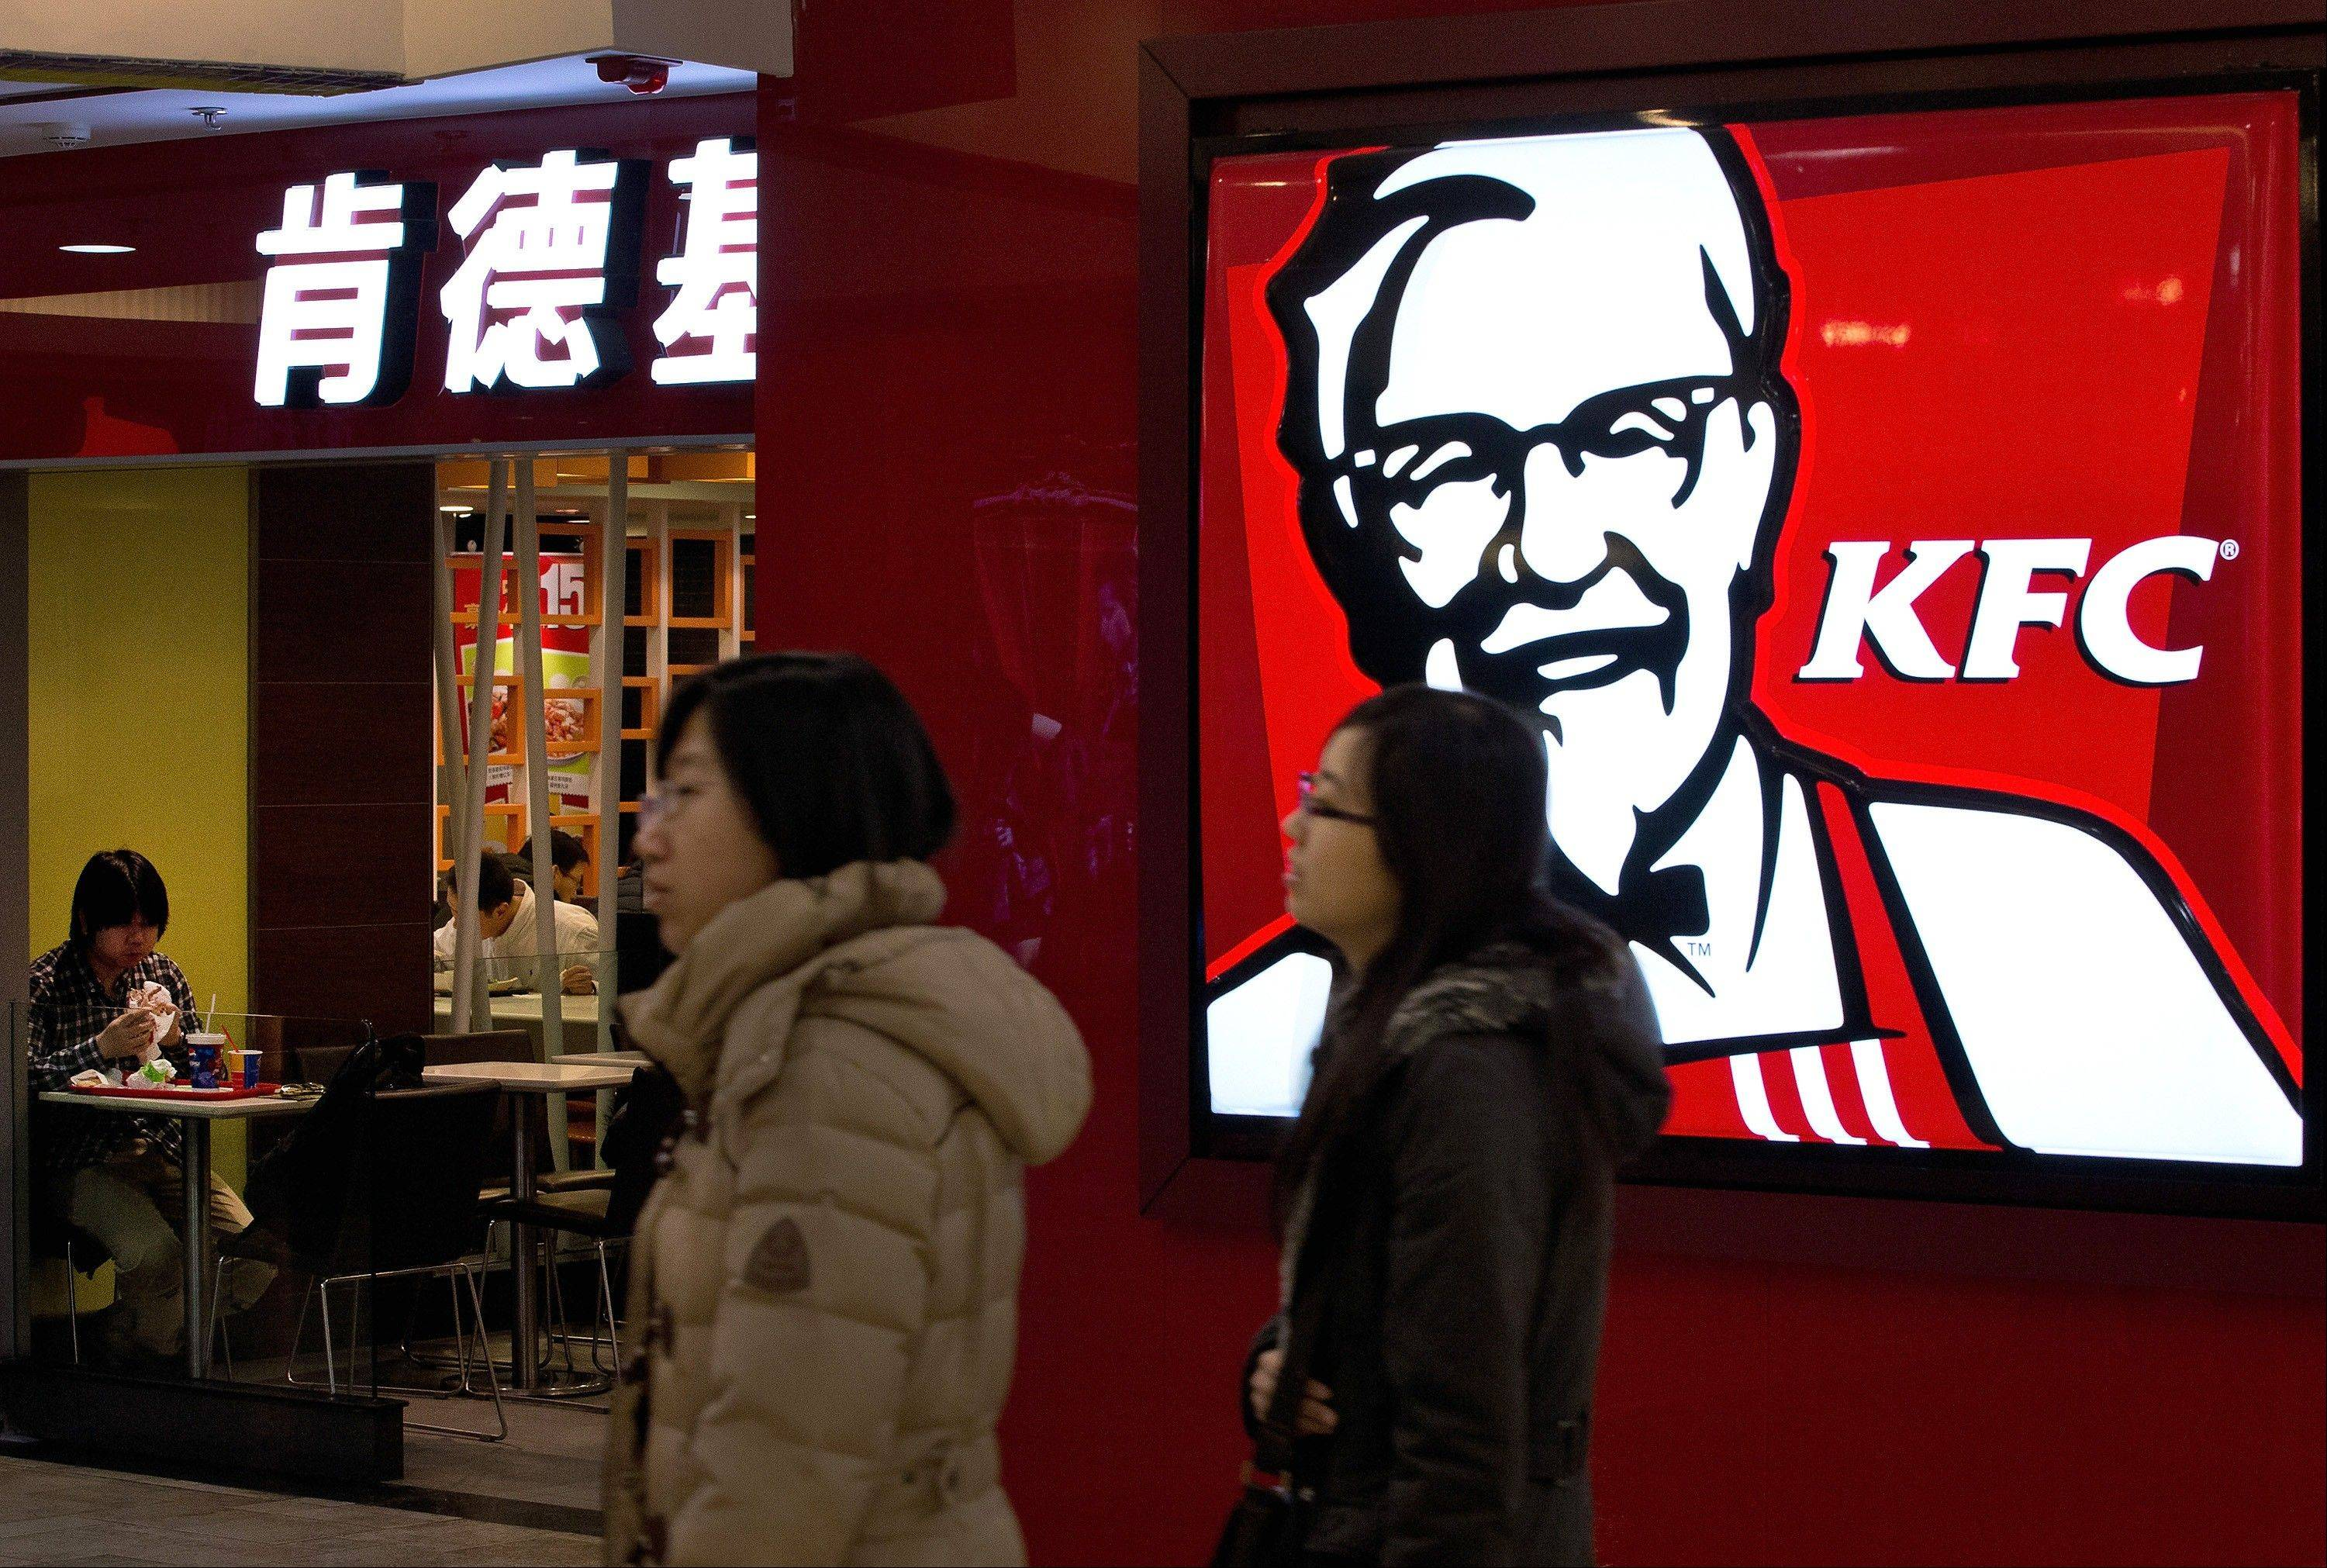 KFC launched a campaign Monday to rebuild its battered brand in China, promising tighter quality control after a scandal over misuse of drugs by its poultry suppliers.